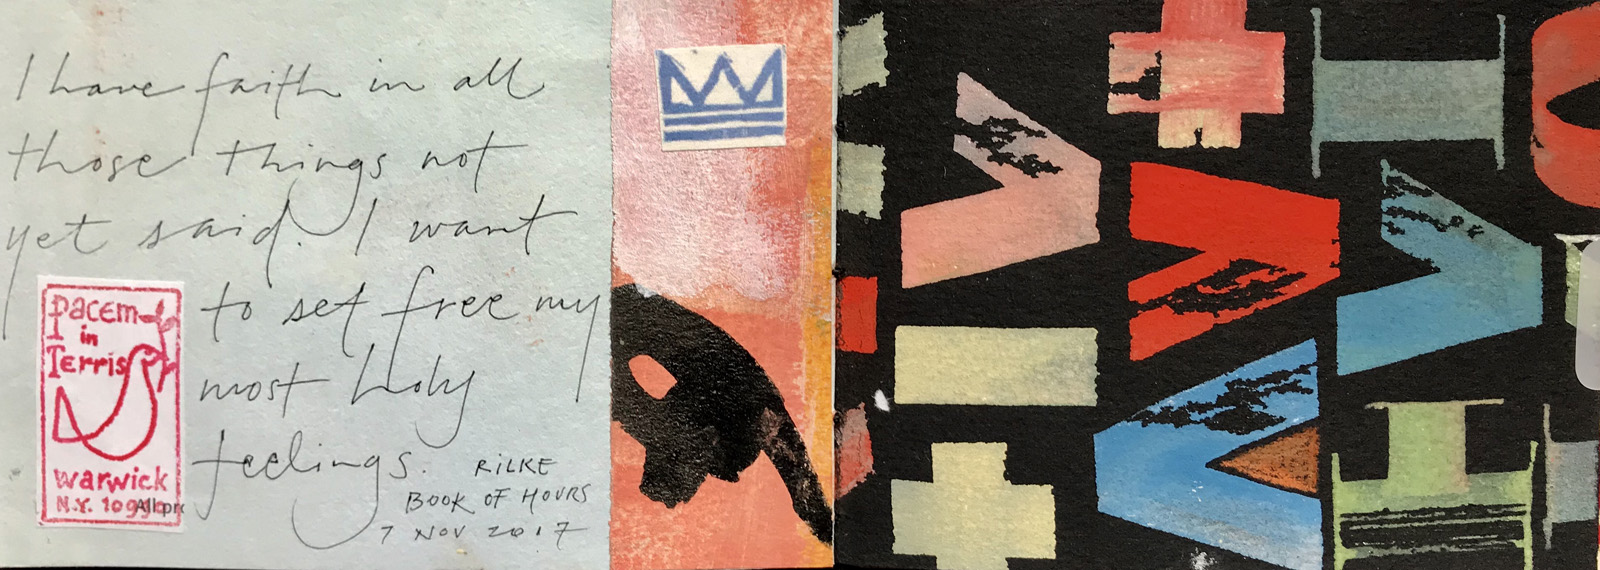 I have faith in all those things not yet said   (Crown + water image from  Mountain Water Ranch)        –L Doctor sketchbook